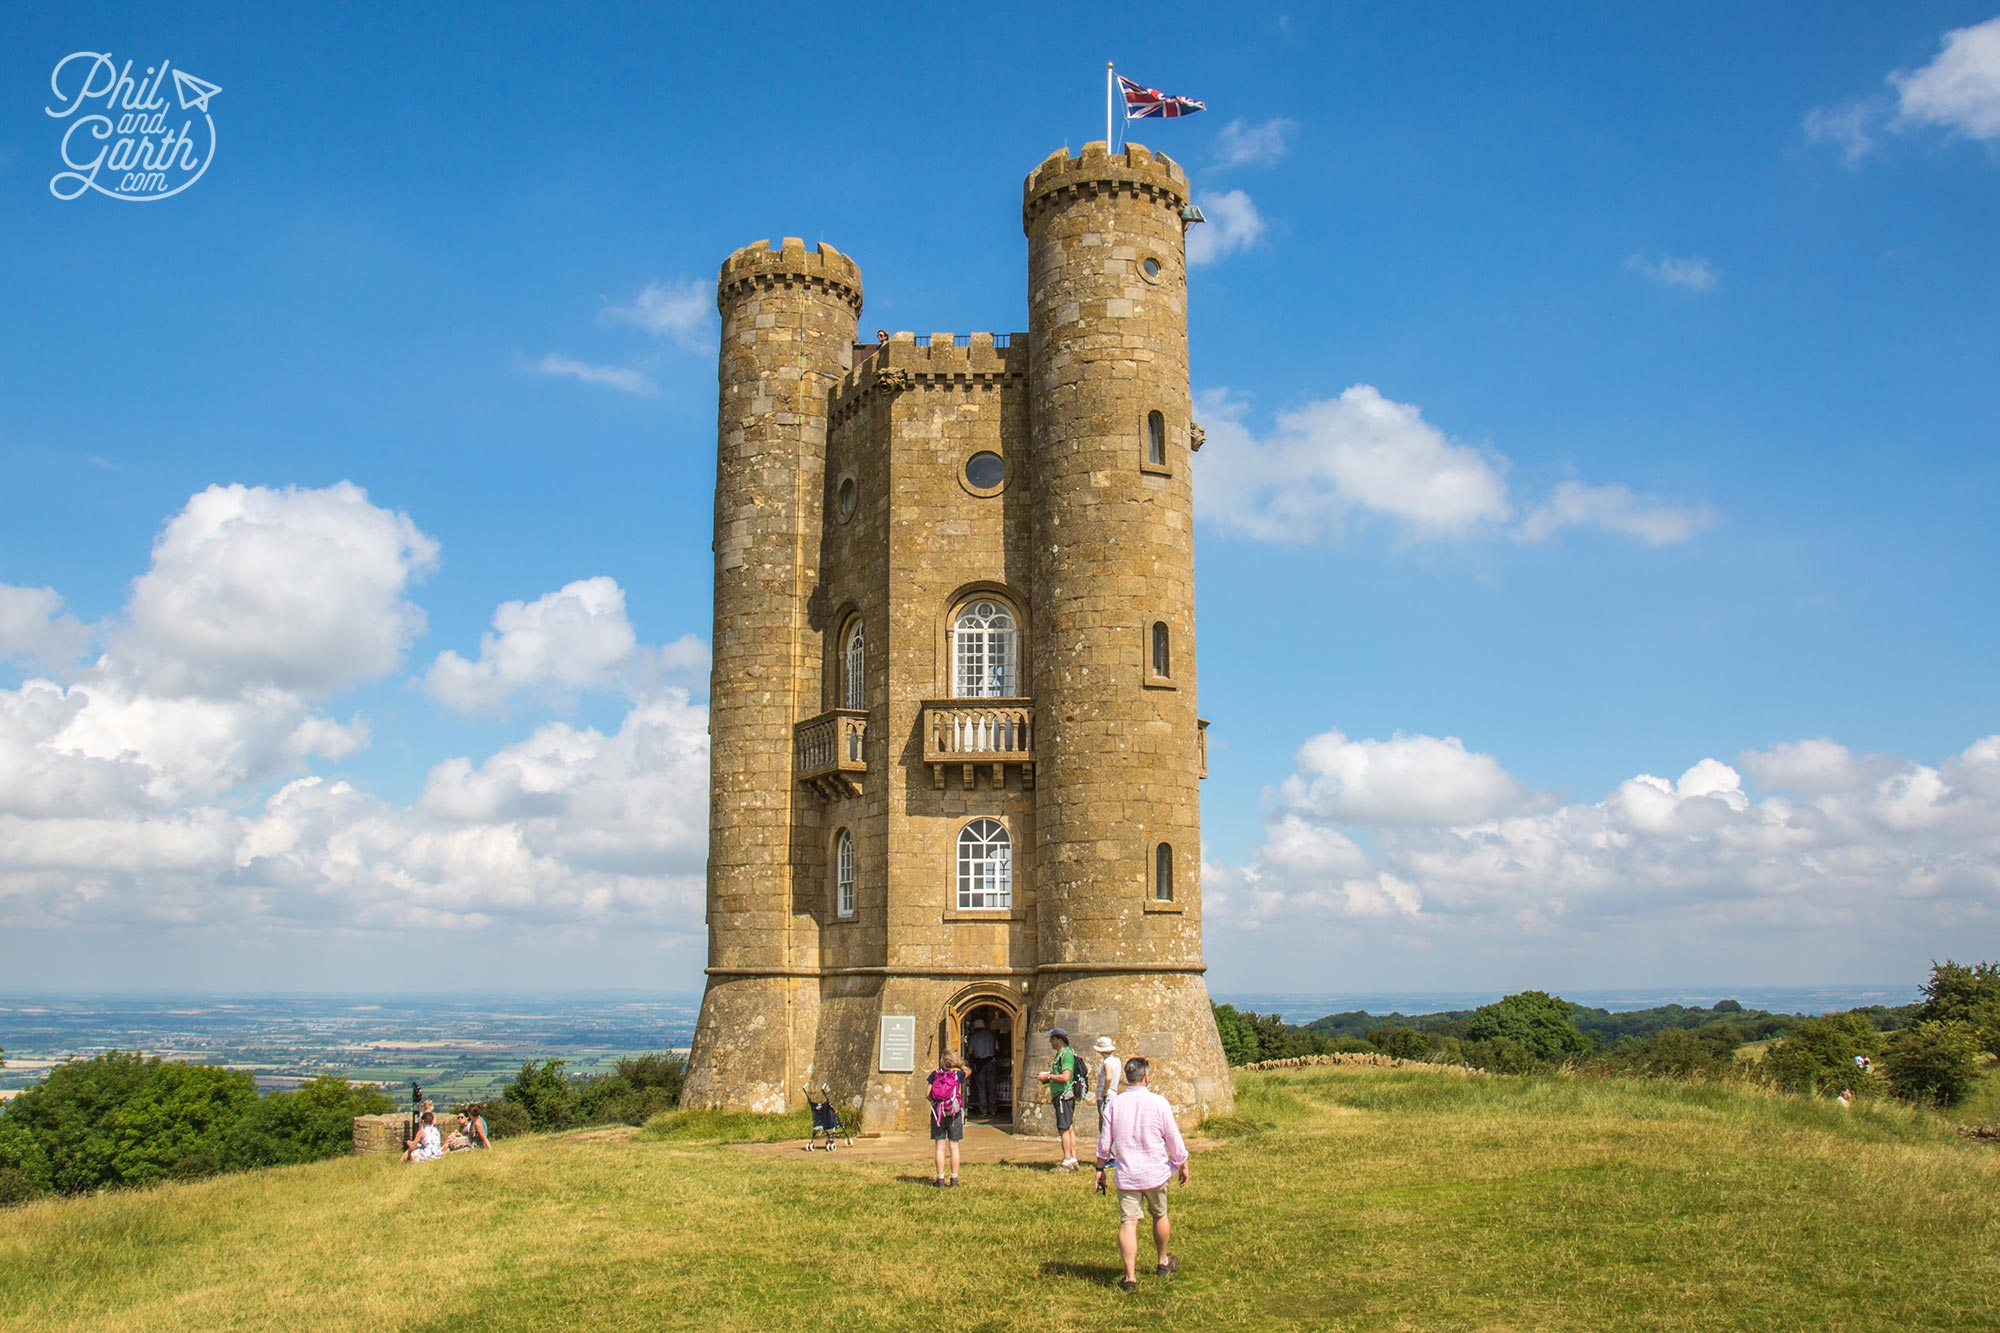 Broadway Tower - the highest castle in the Cotswolds